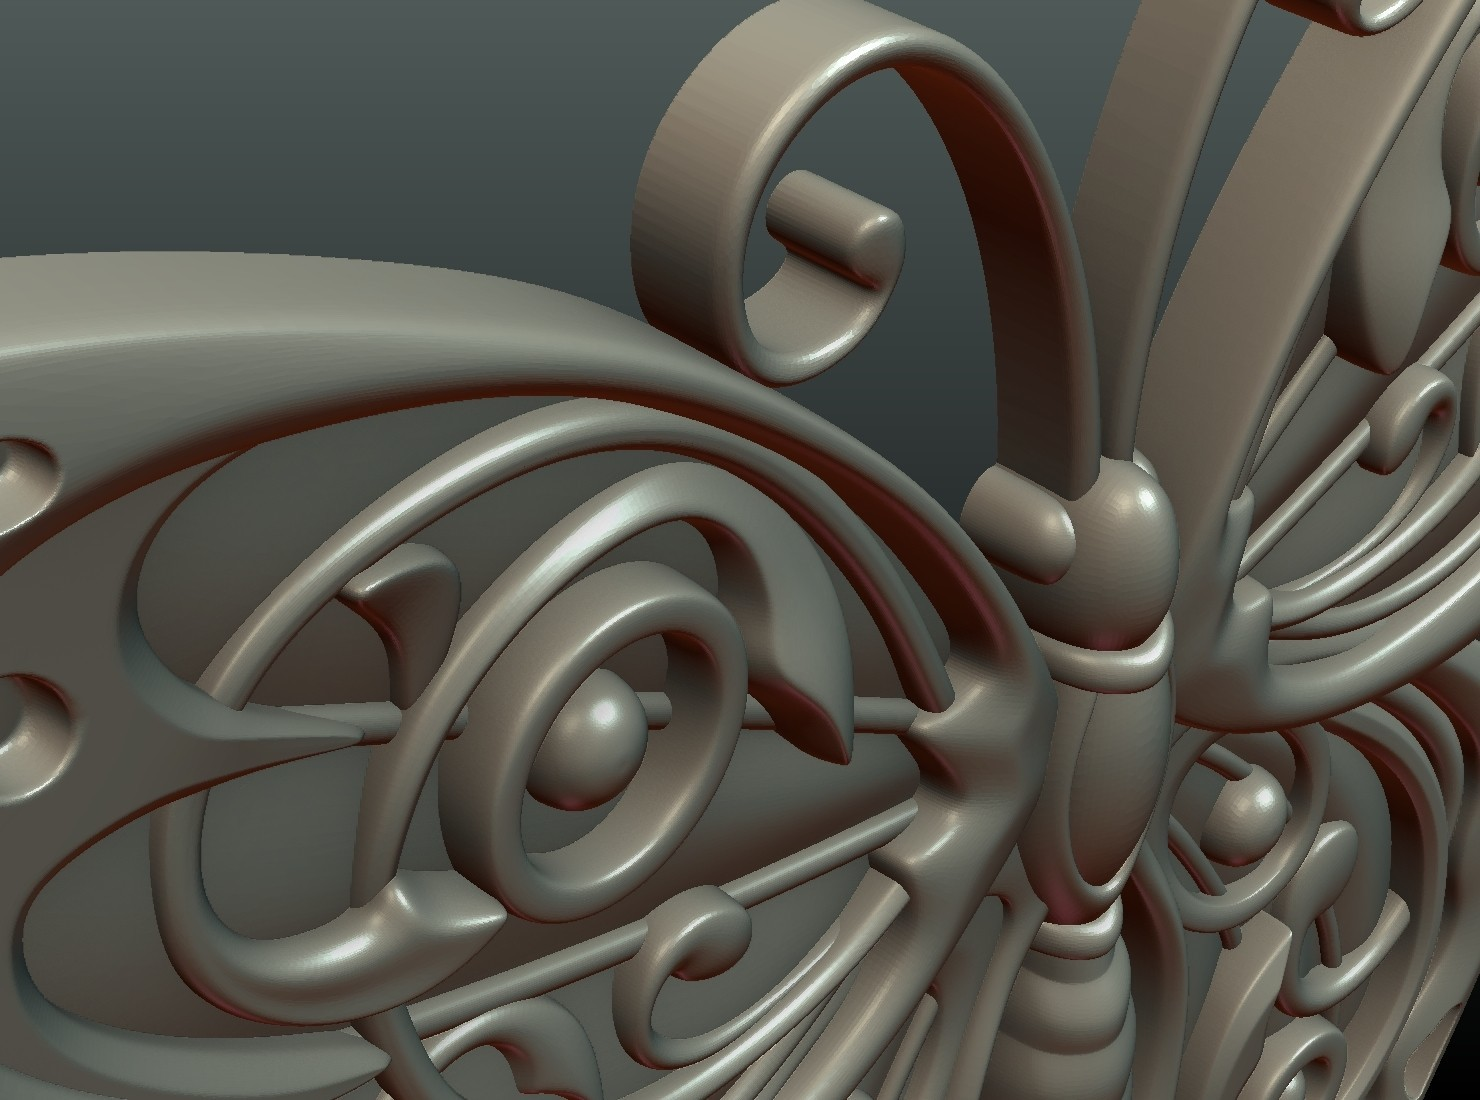 Butterfly_OPGL_27-07.jpg Download STL file Butterfly relief • Model to 3D print, Skazok